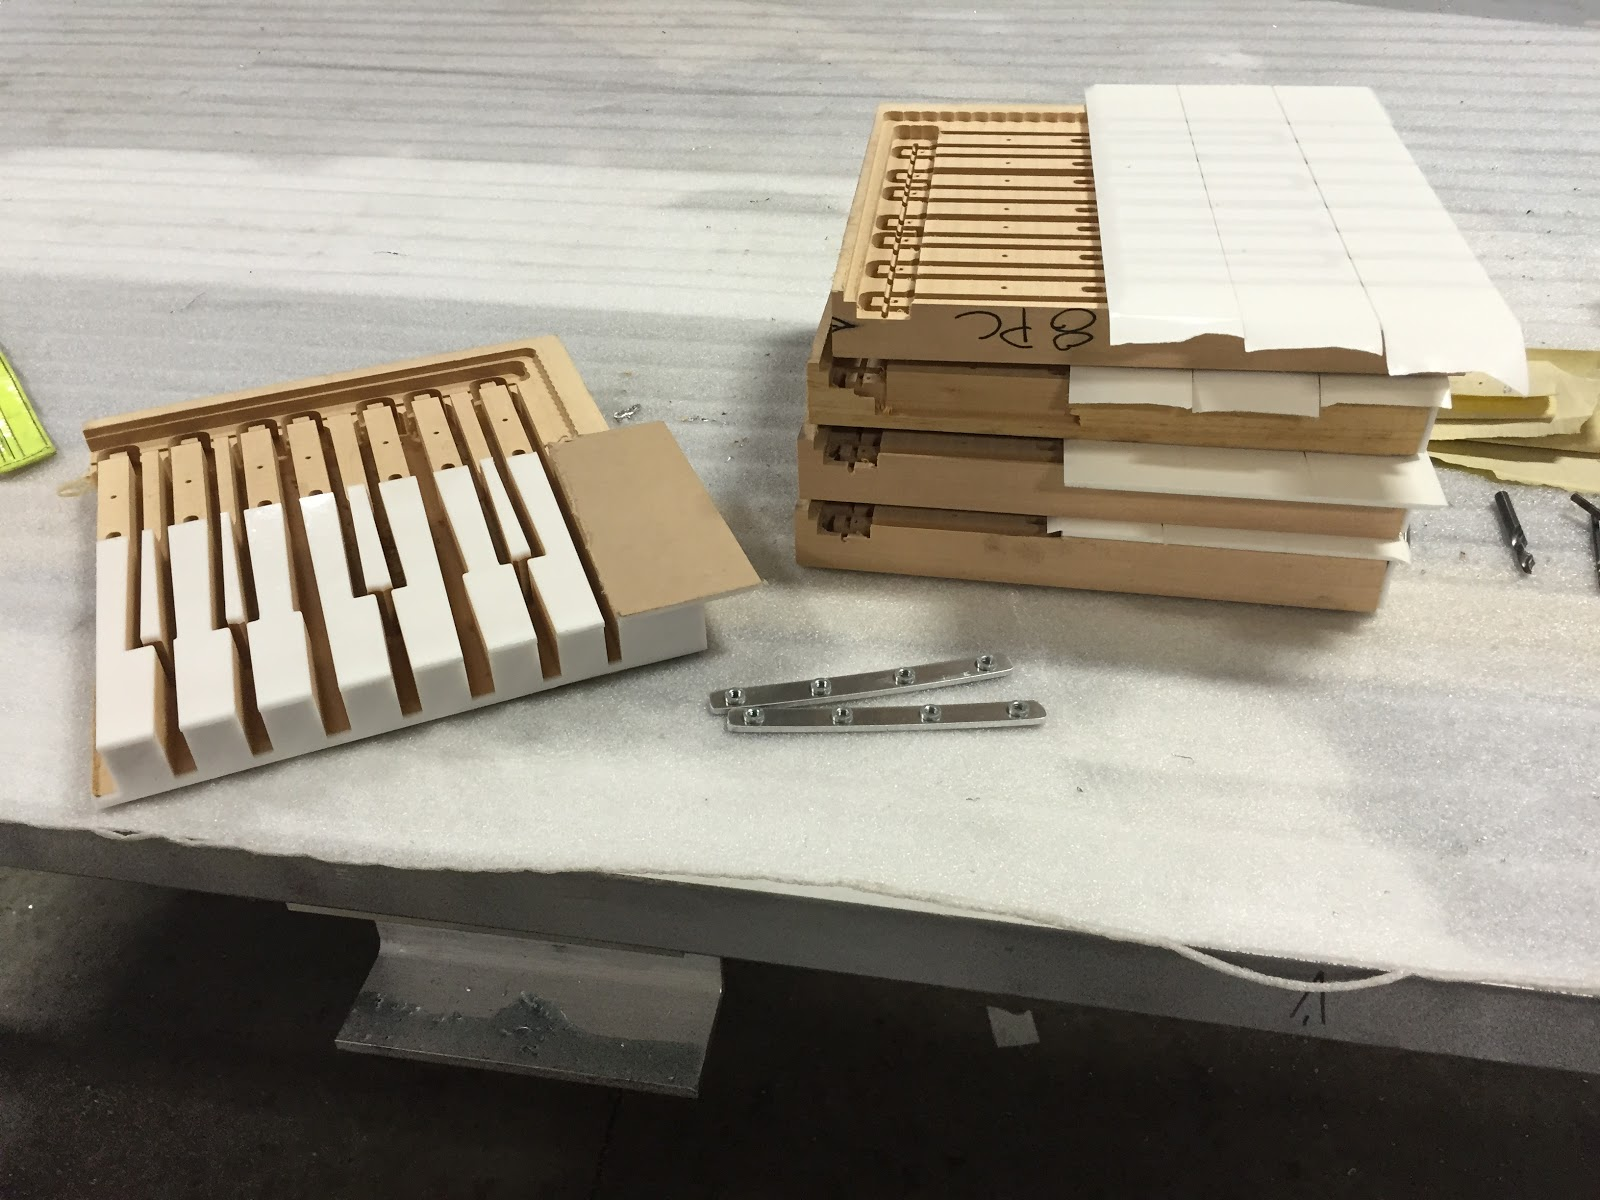 Machining custom piano keys for circular fit